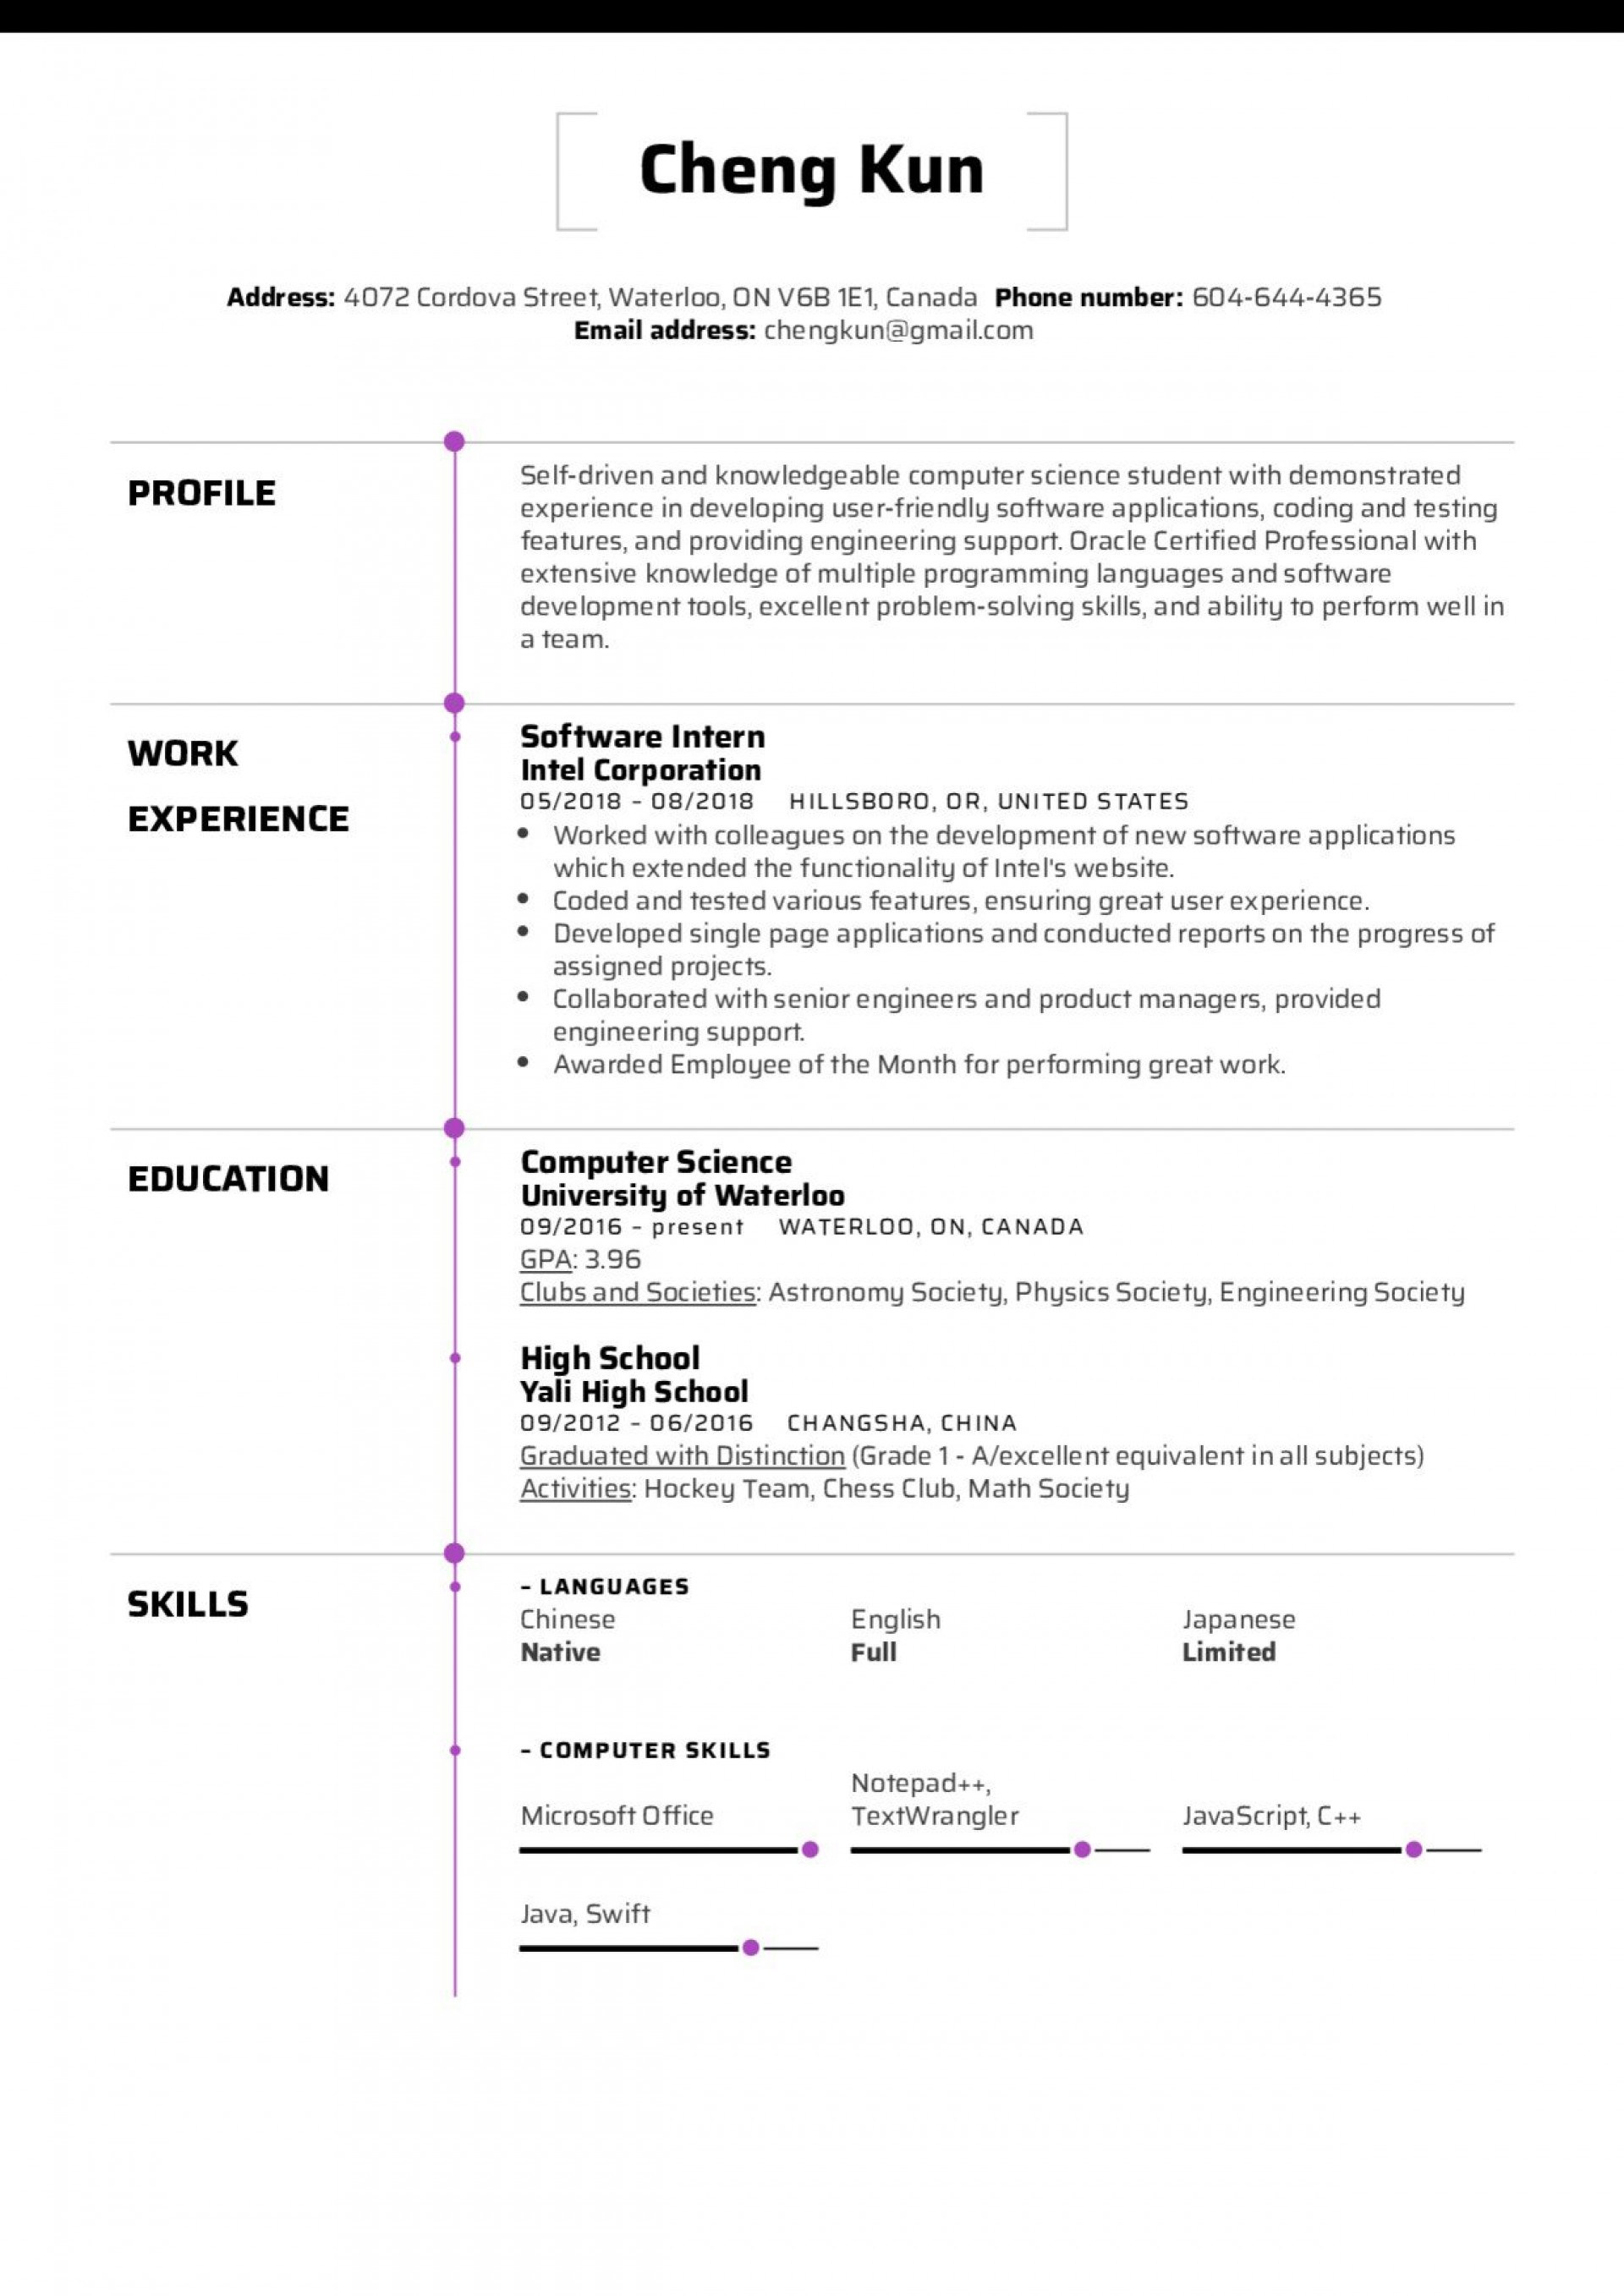 006 Exceptional Resume Template For Student Highest Clarity  Students High School Internship Google Doc Openoffice Free Download1920